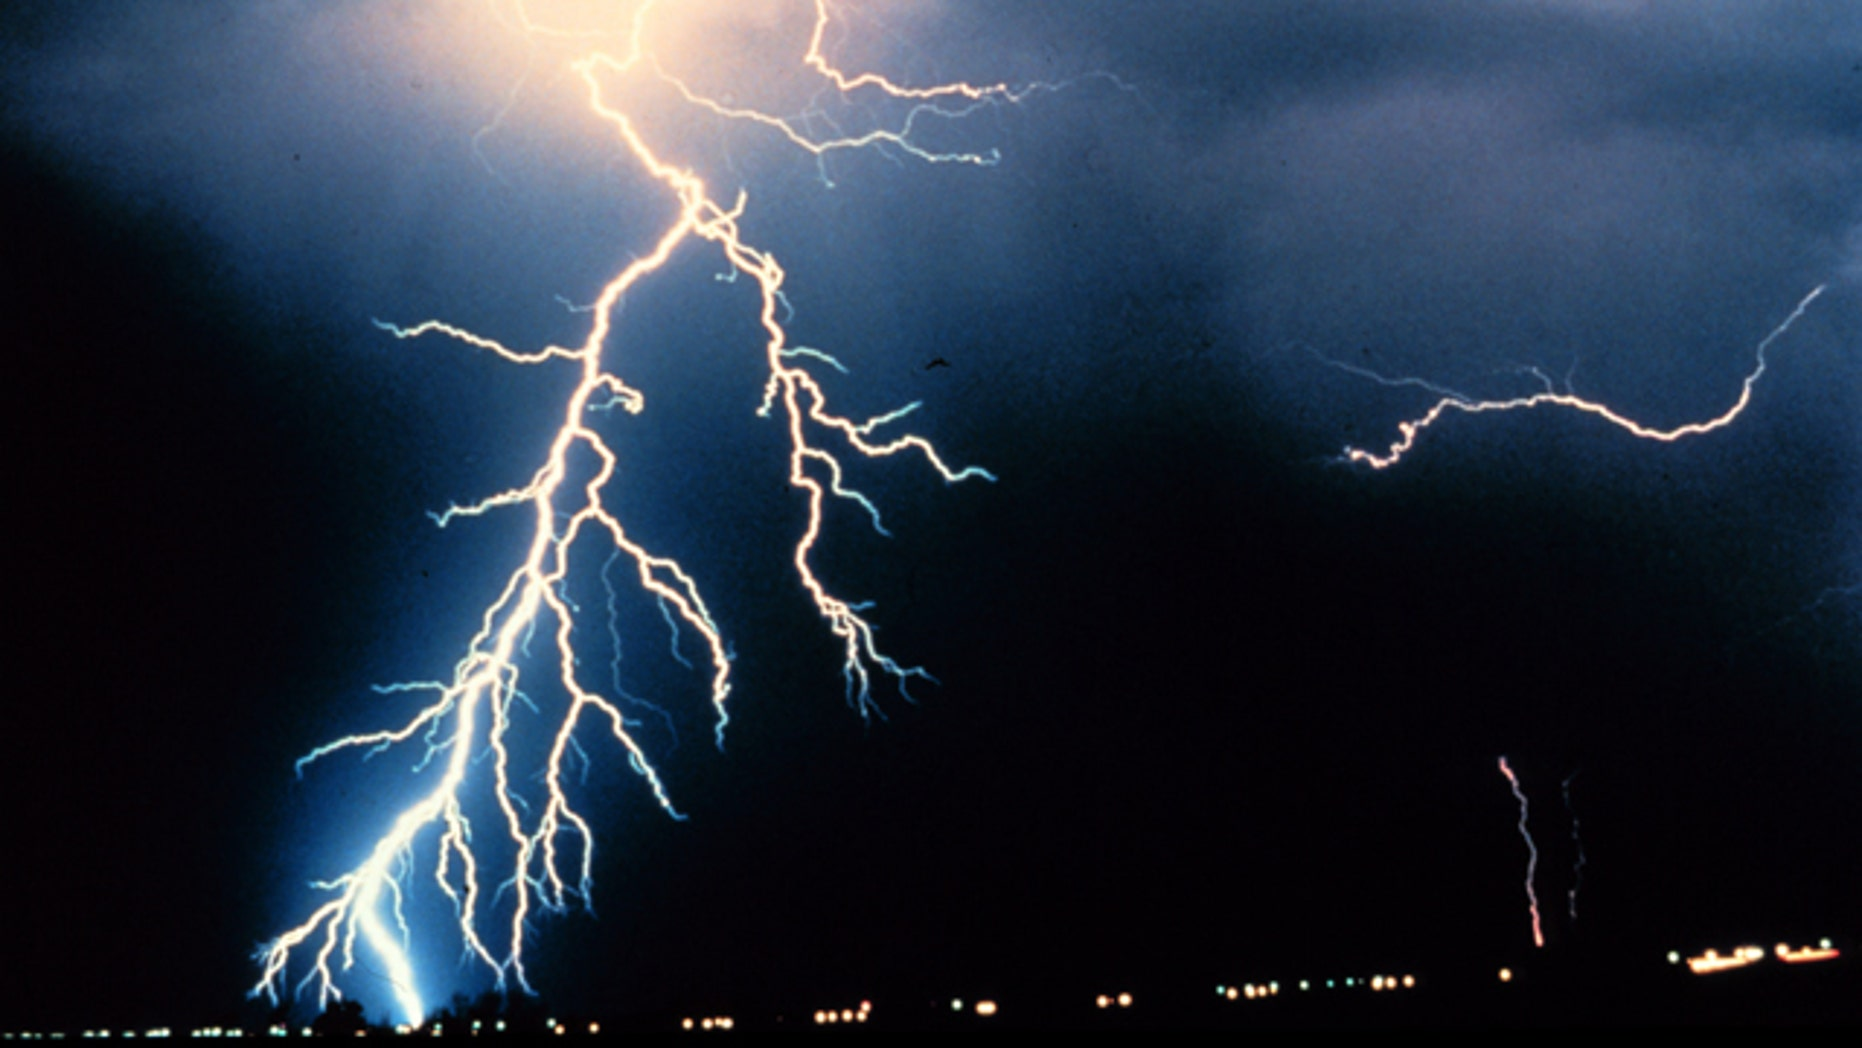 Multiple cloud-to-ground and cloud-to-cloud lightning strokes during night-time.